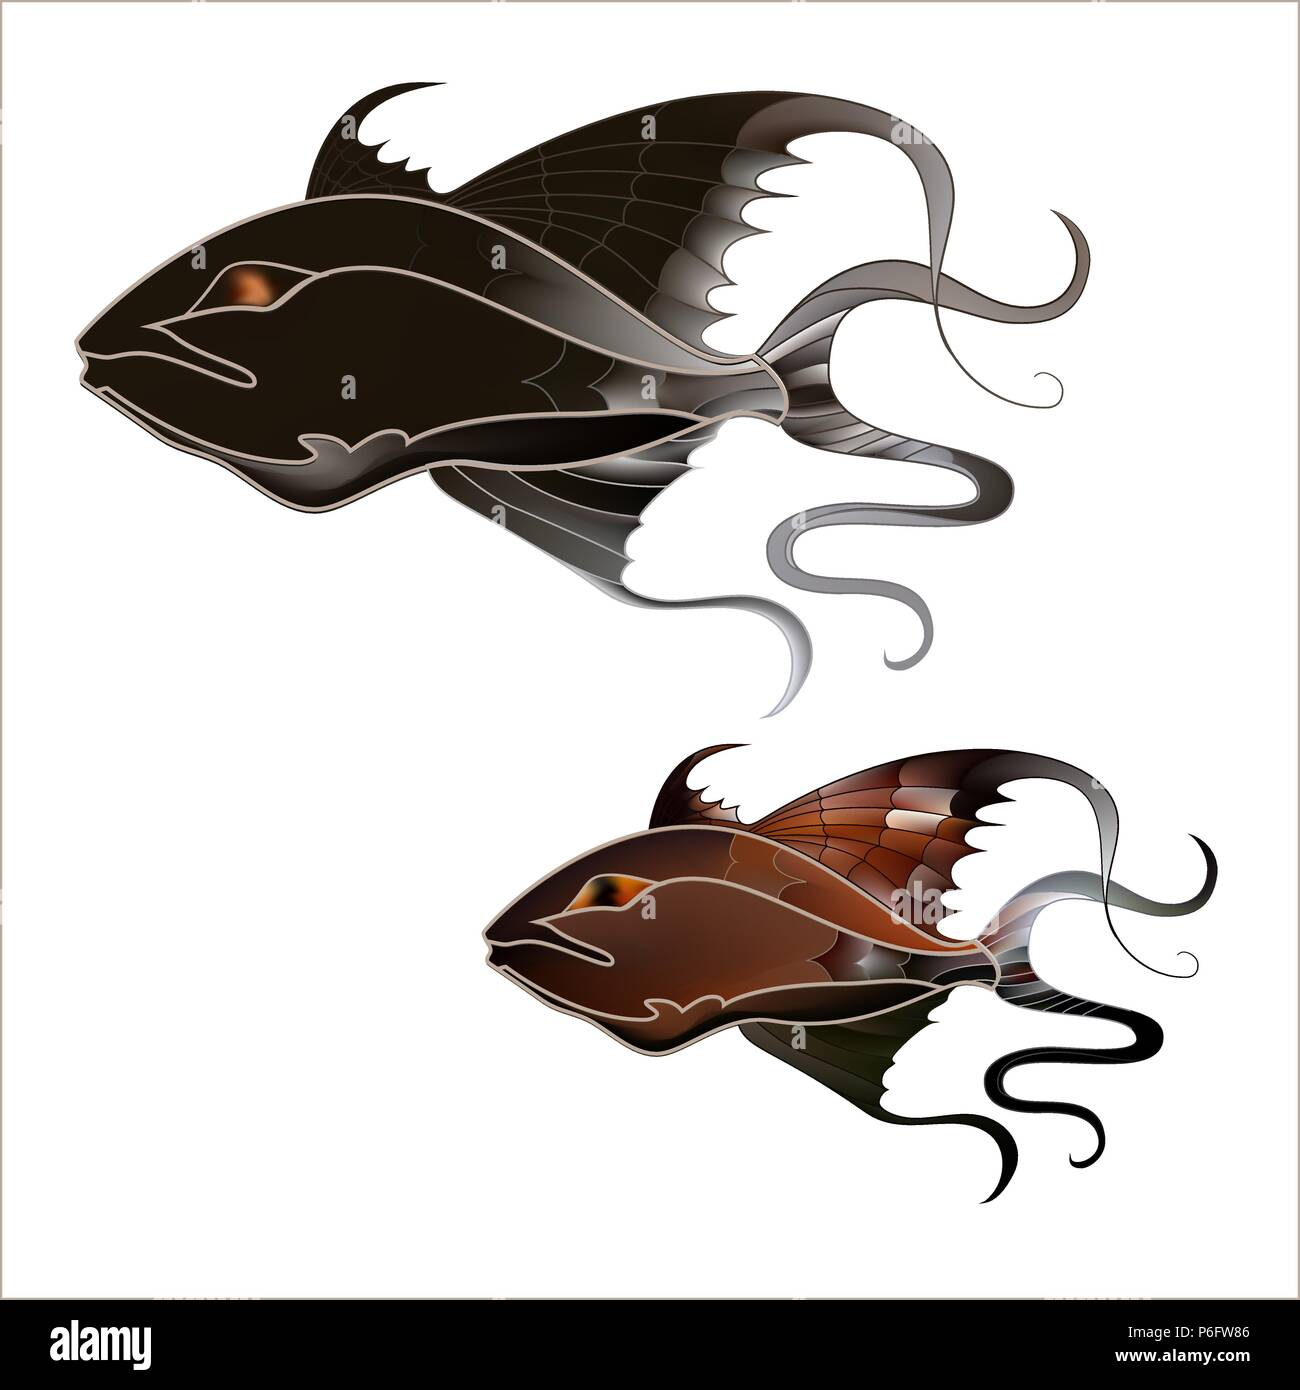 Fabulous illustration of a fantastic marine fish delicate purple shades - Stock Image